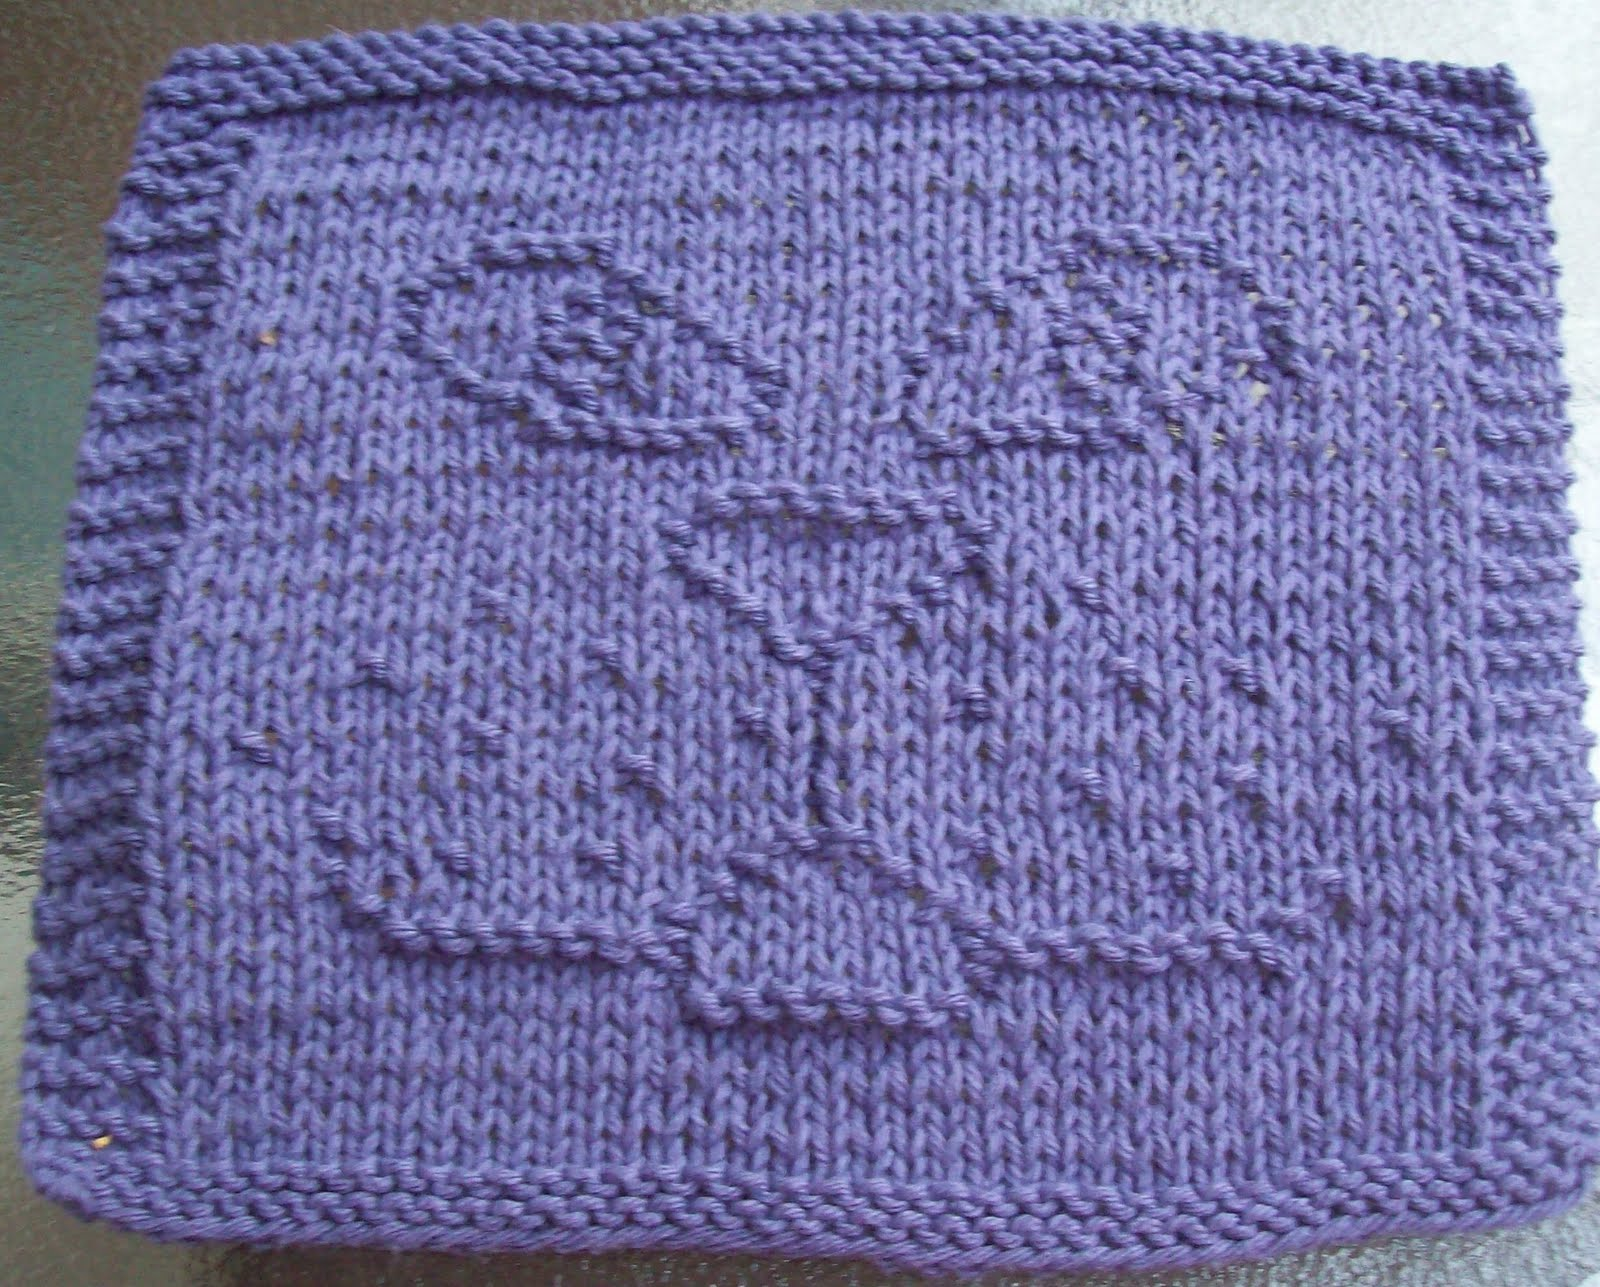 Dishcloth Knitting Pattern : DigKnitty Designs: Cat Face Knit Dishcloth Pattern